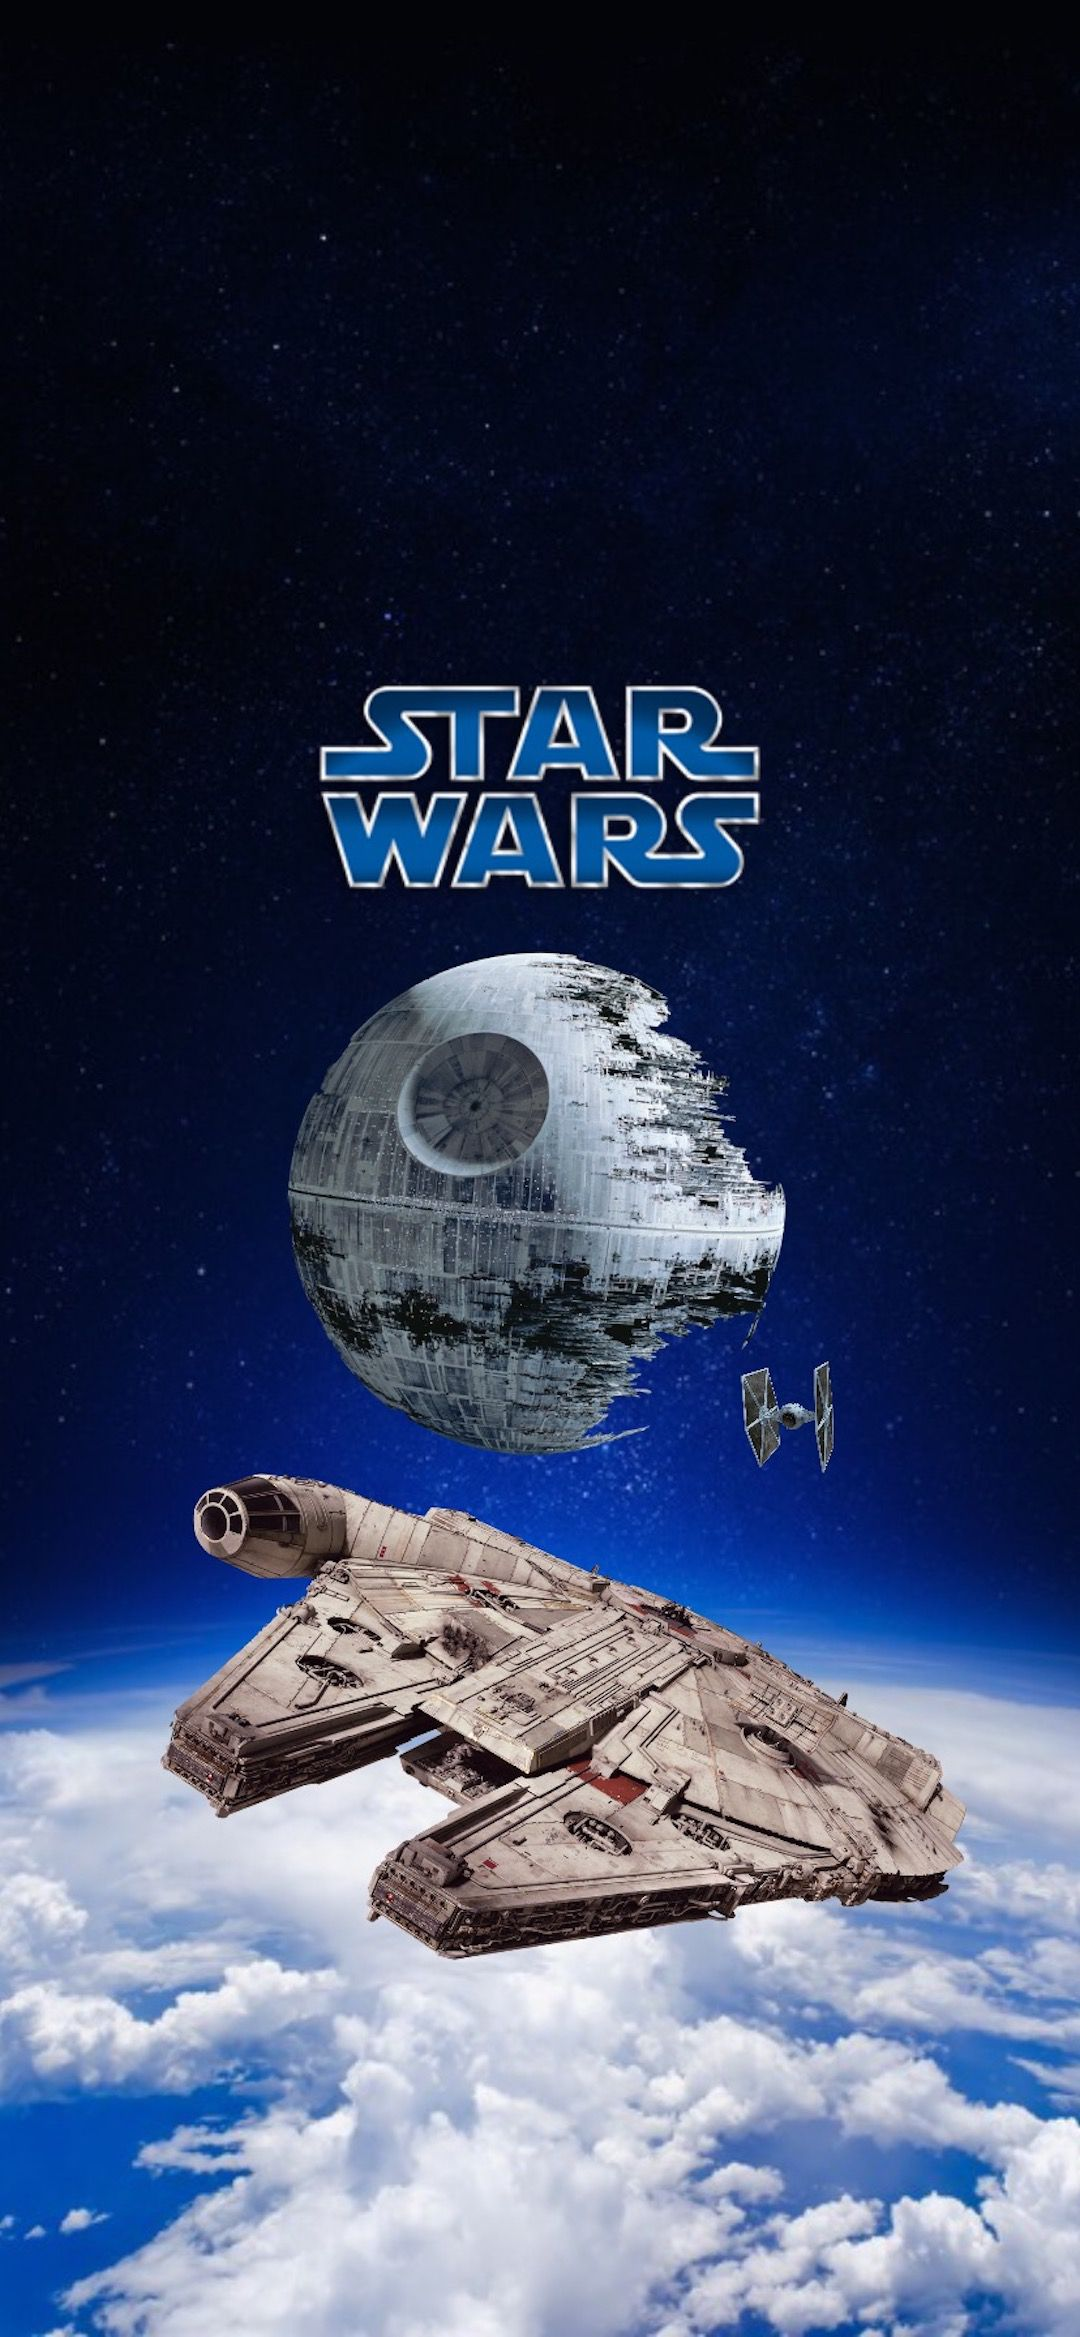 Pin by kevinkevinlo on Art Star wars, Iphone wallpaper